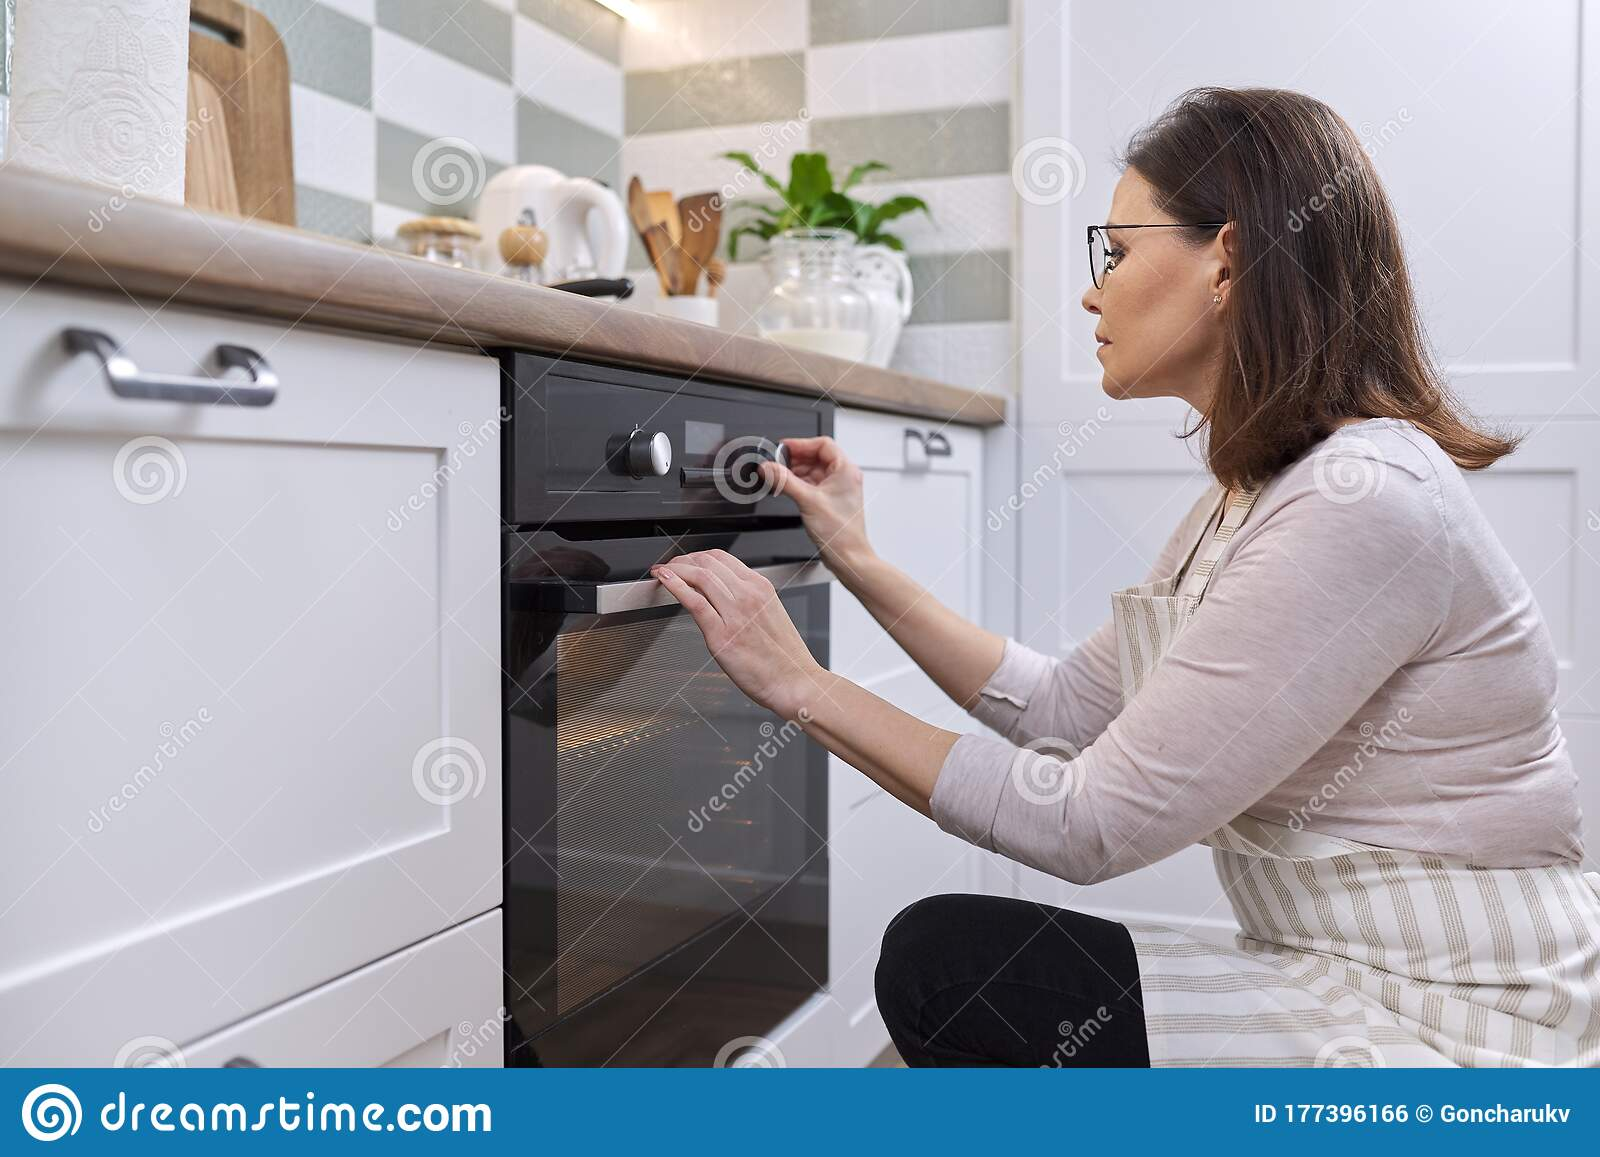 Hand Holding Paper Towels In Kitchen Near Refrigerator